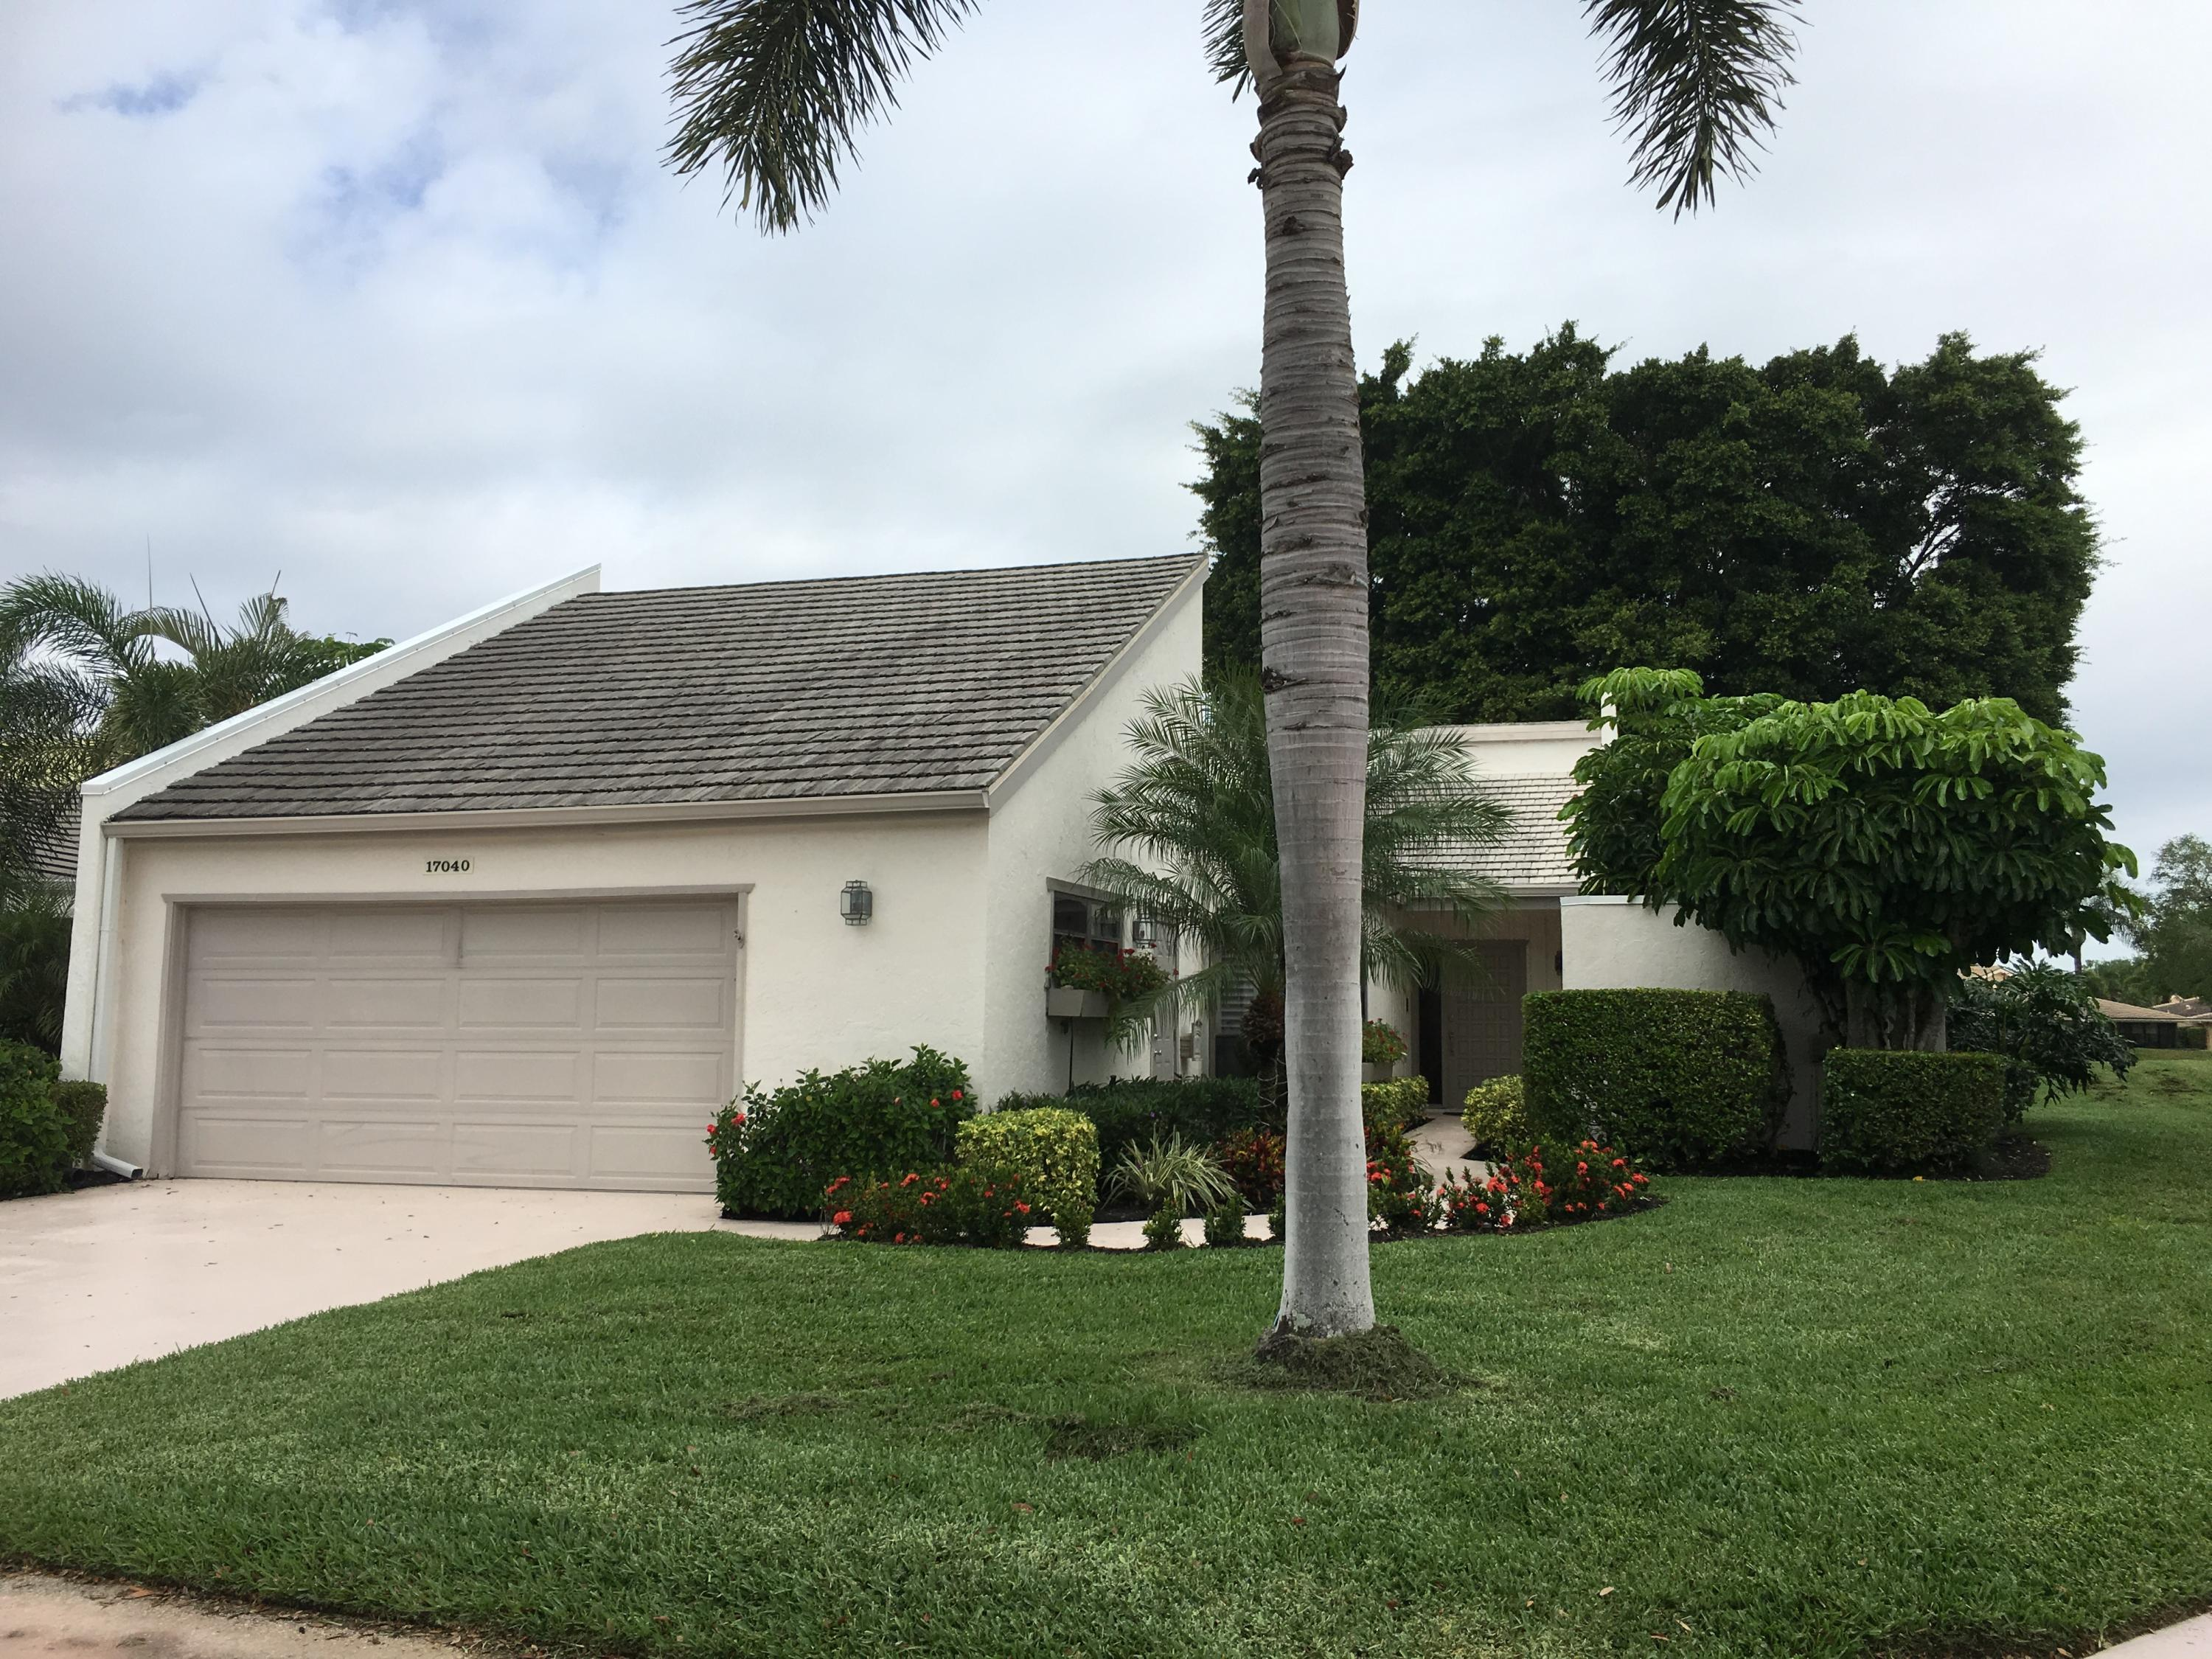 17040 Traverse Circle, Jupiter, Florida 33477, 3 Bedrooms Bedrooms, ,3.1 BathroomsBathrooms,F,Single family,Traverse,RX-10603207